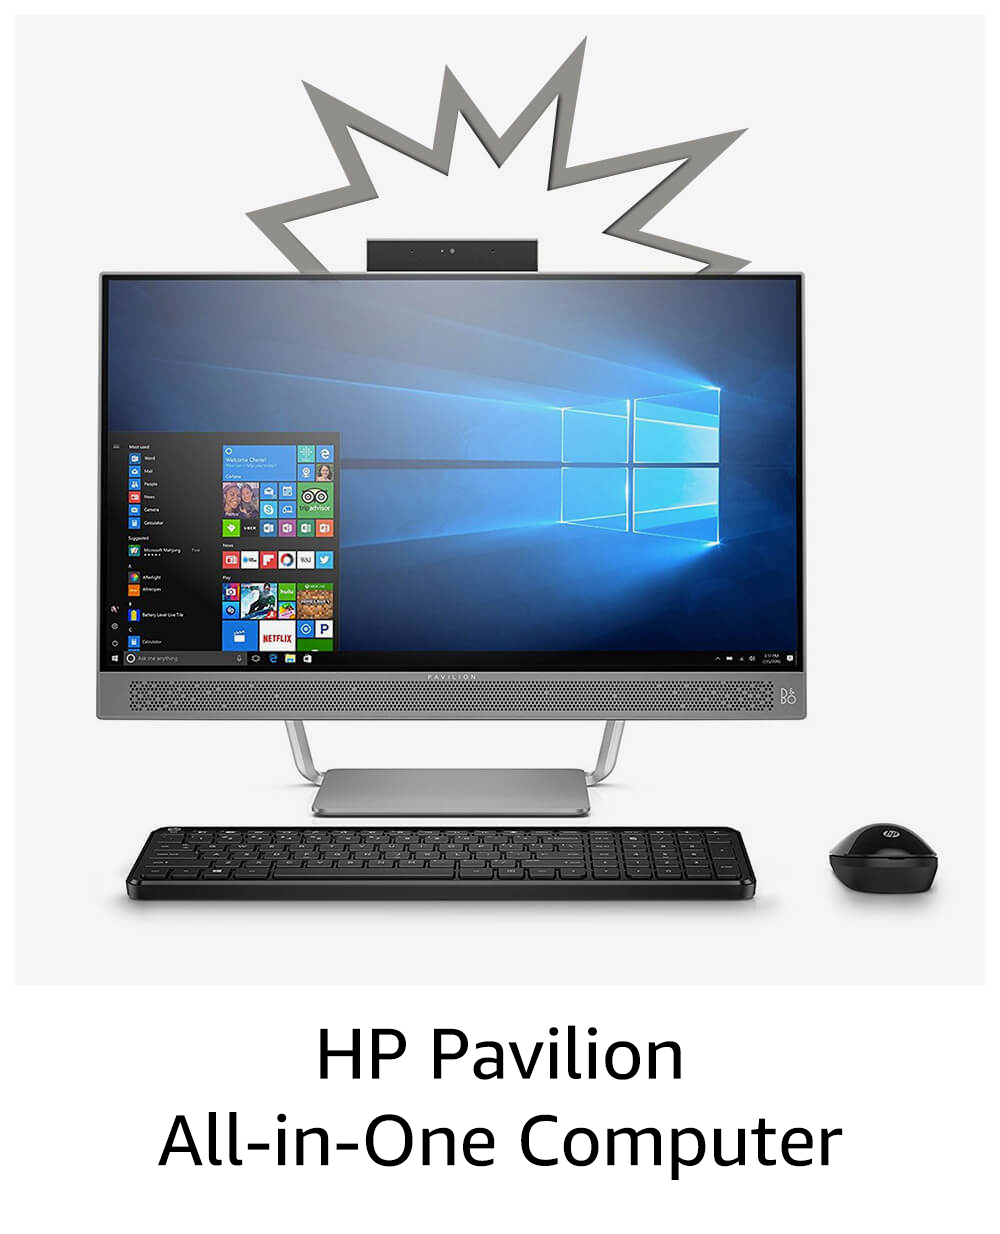 HP Pavilion All-in-One Computer